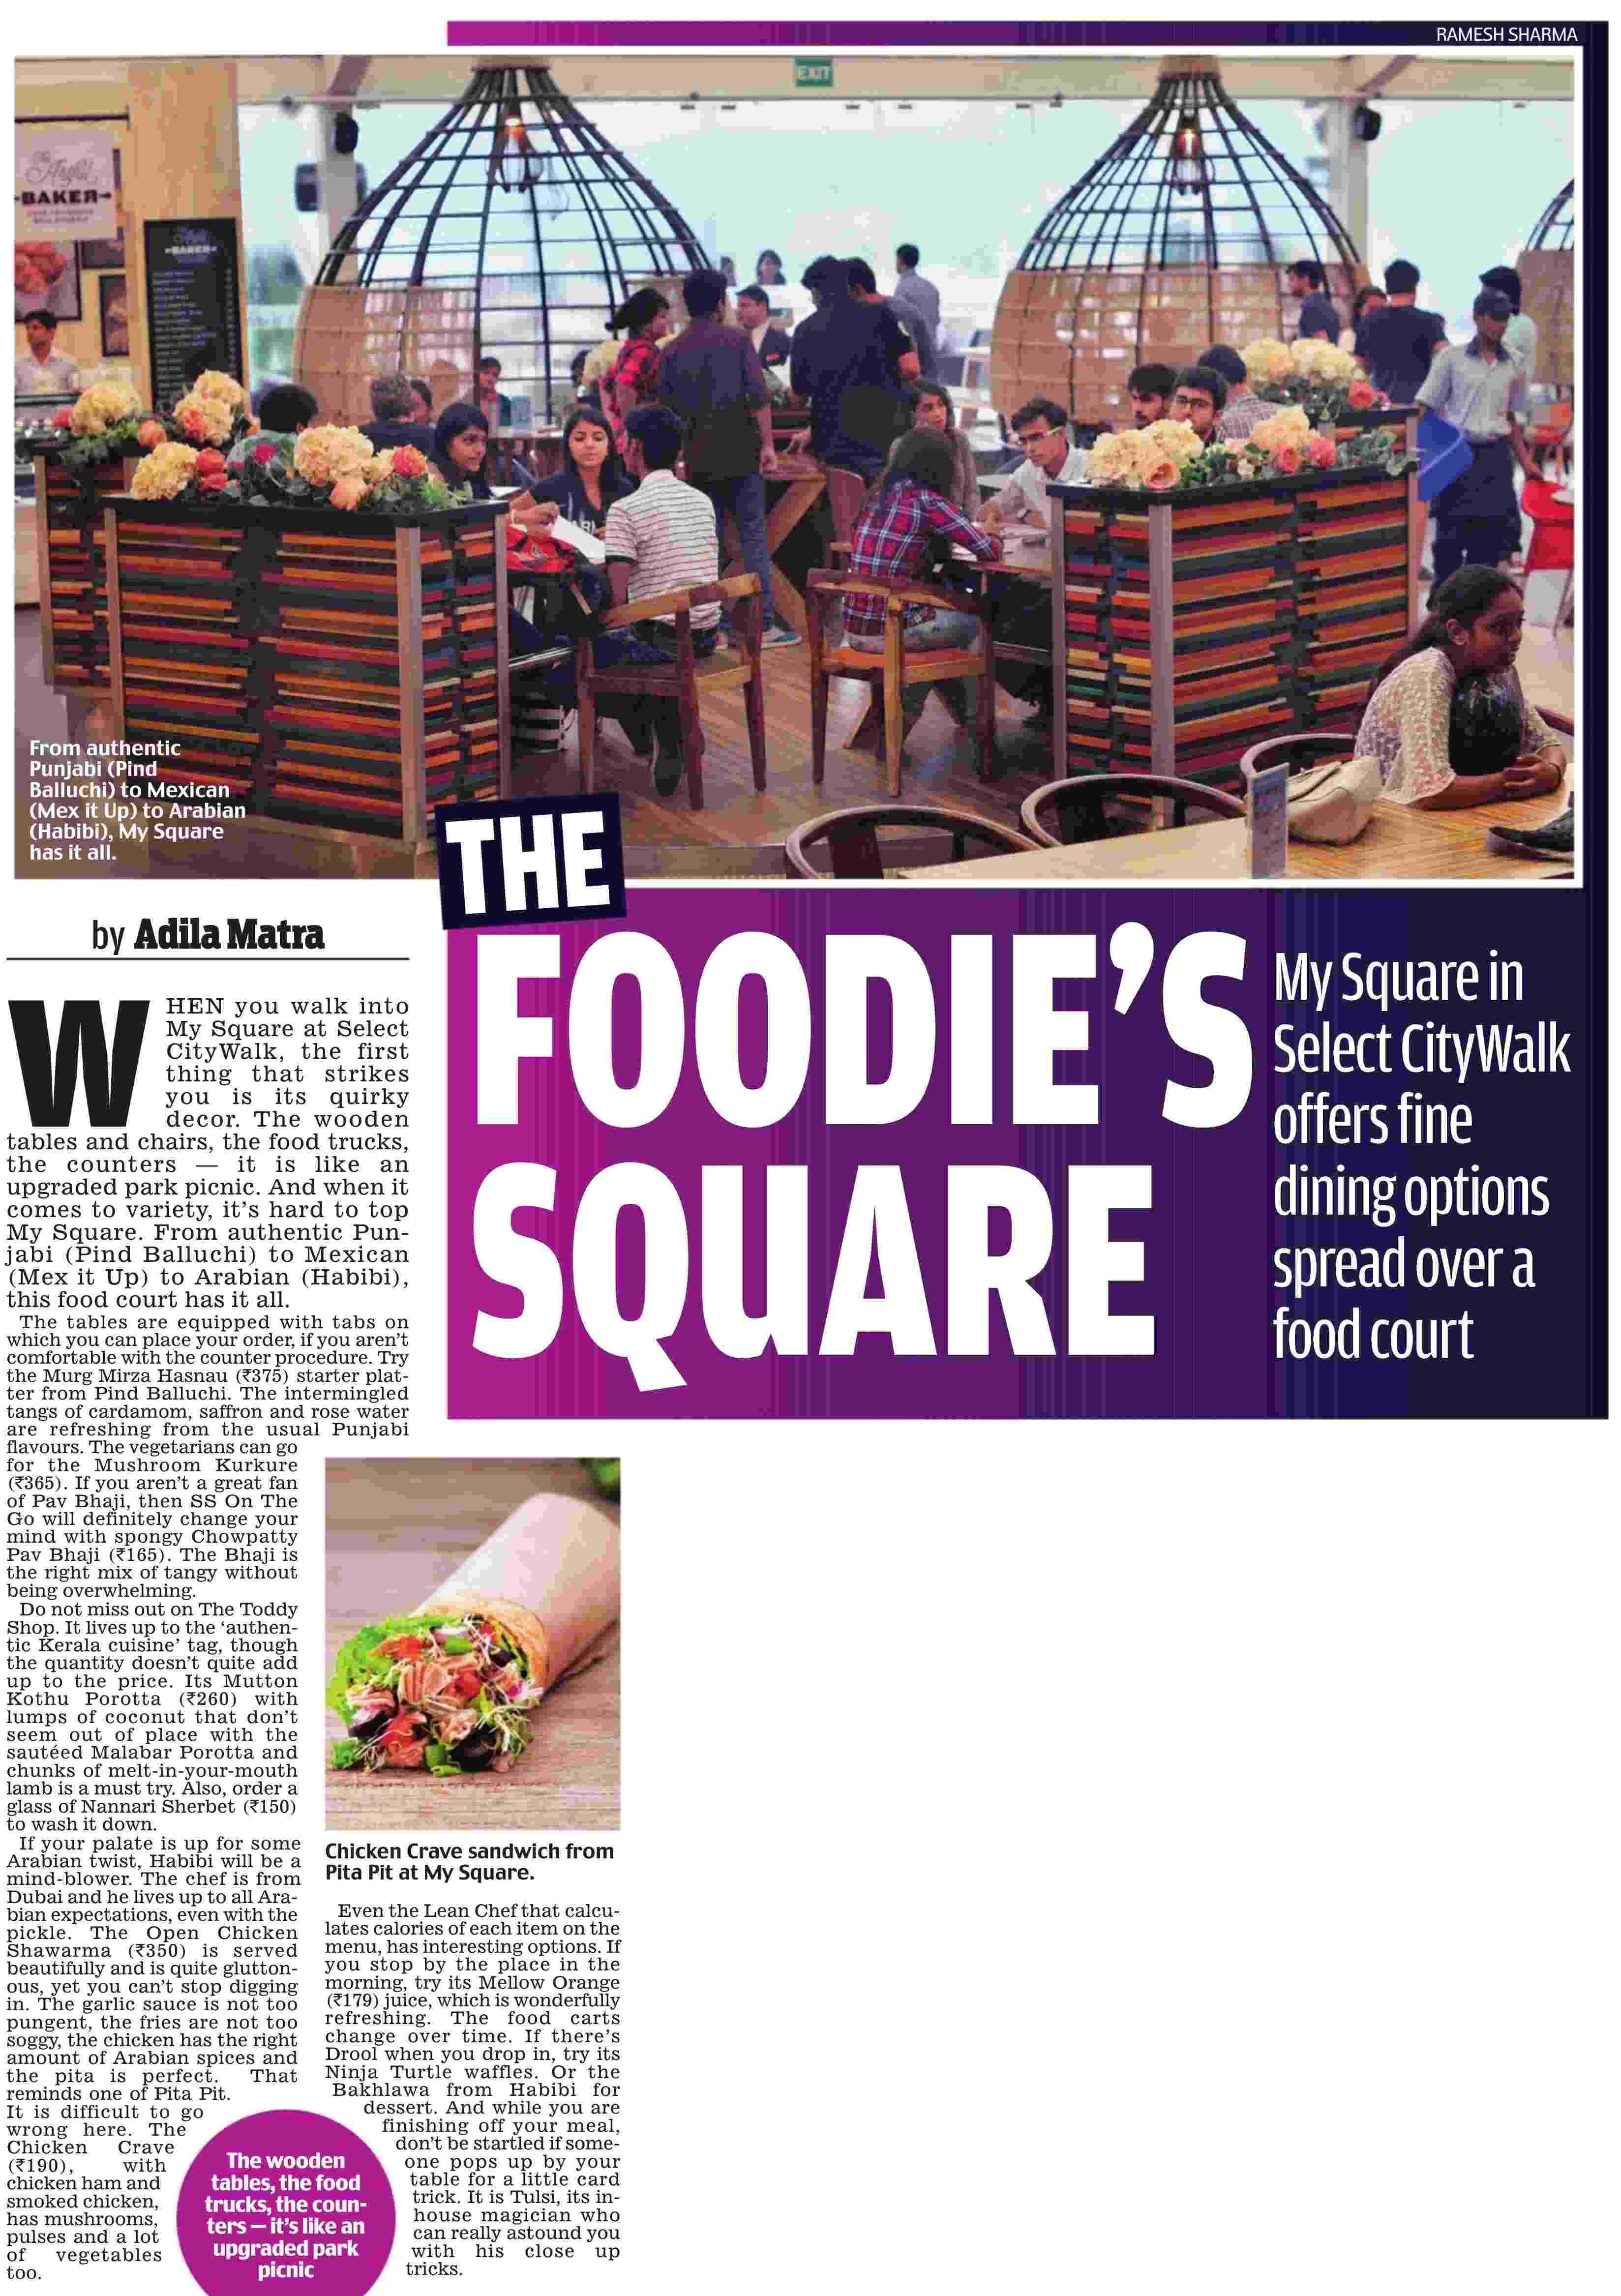 The Foodie's Square